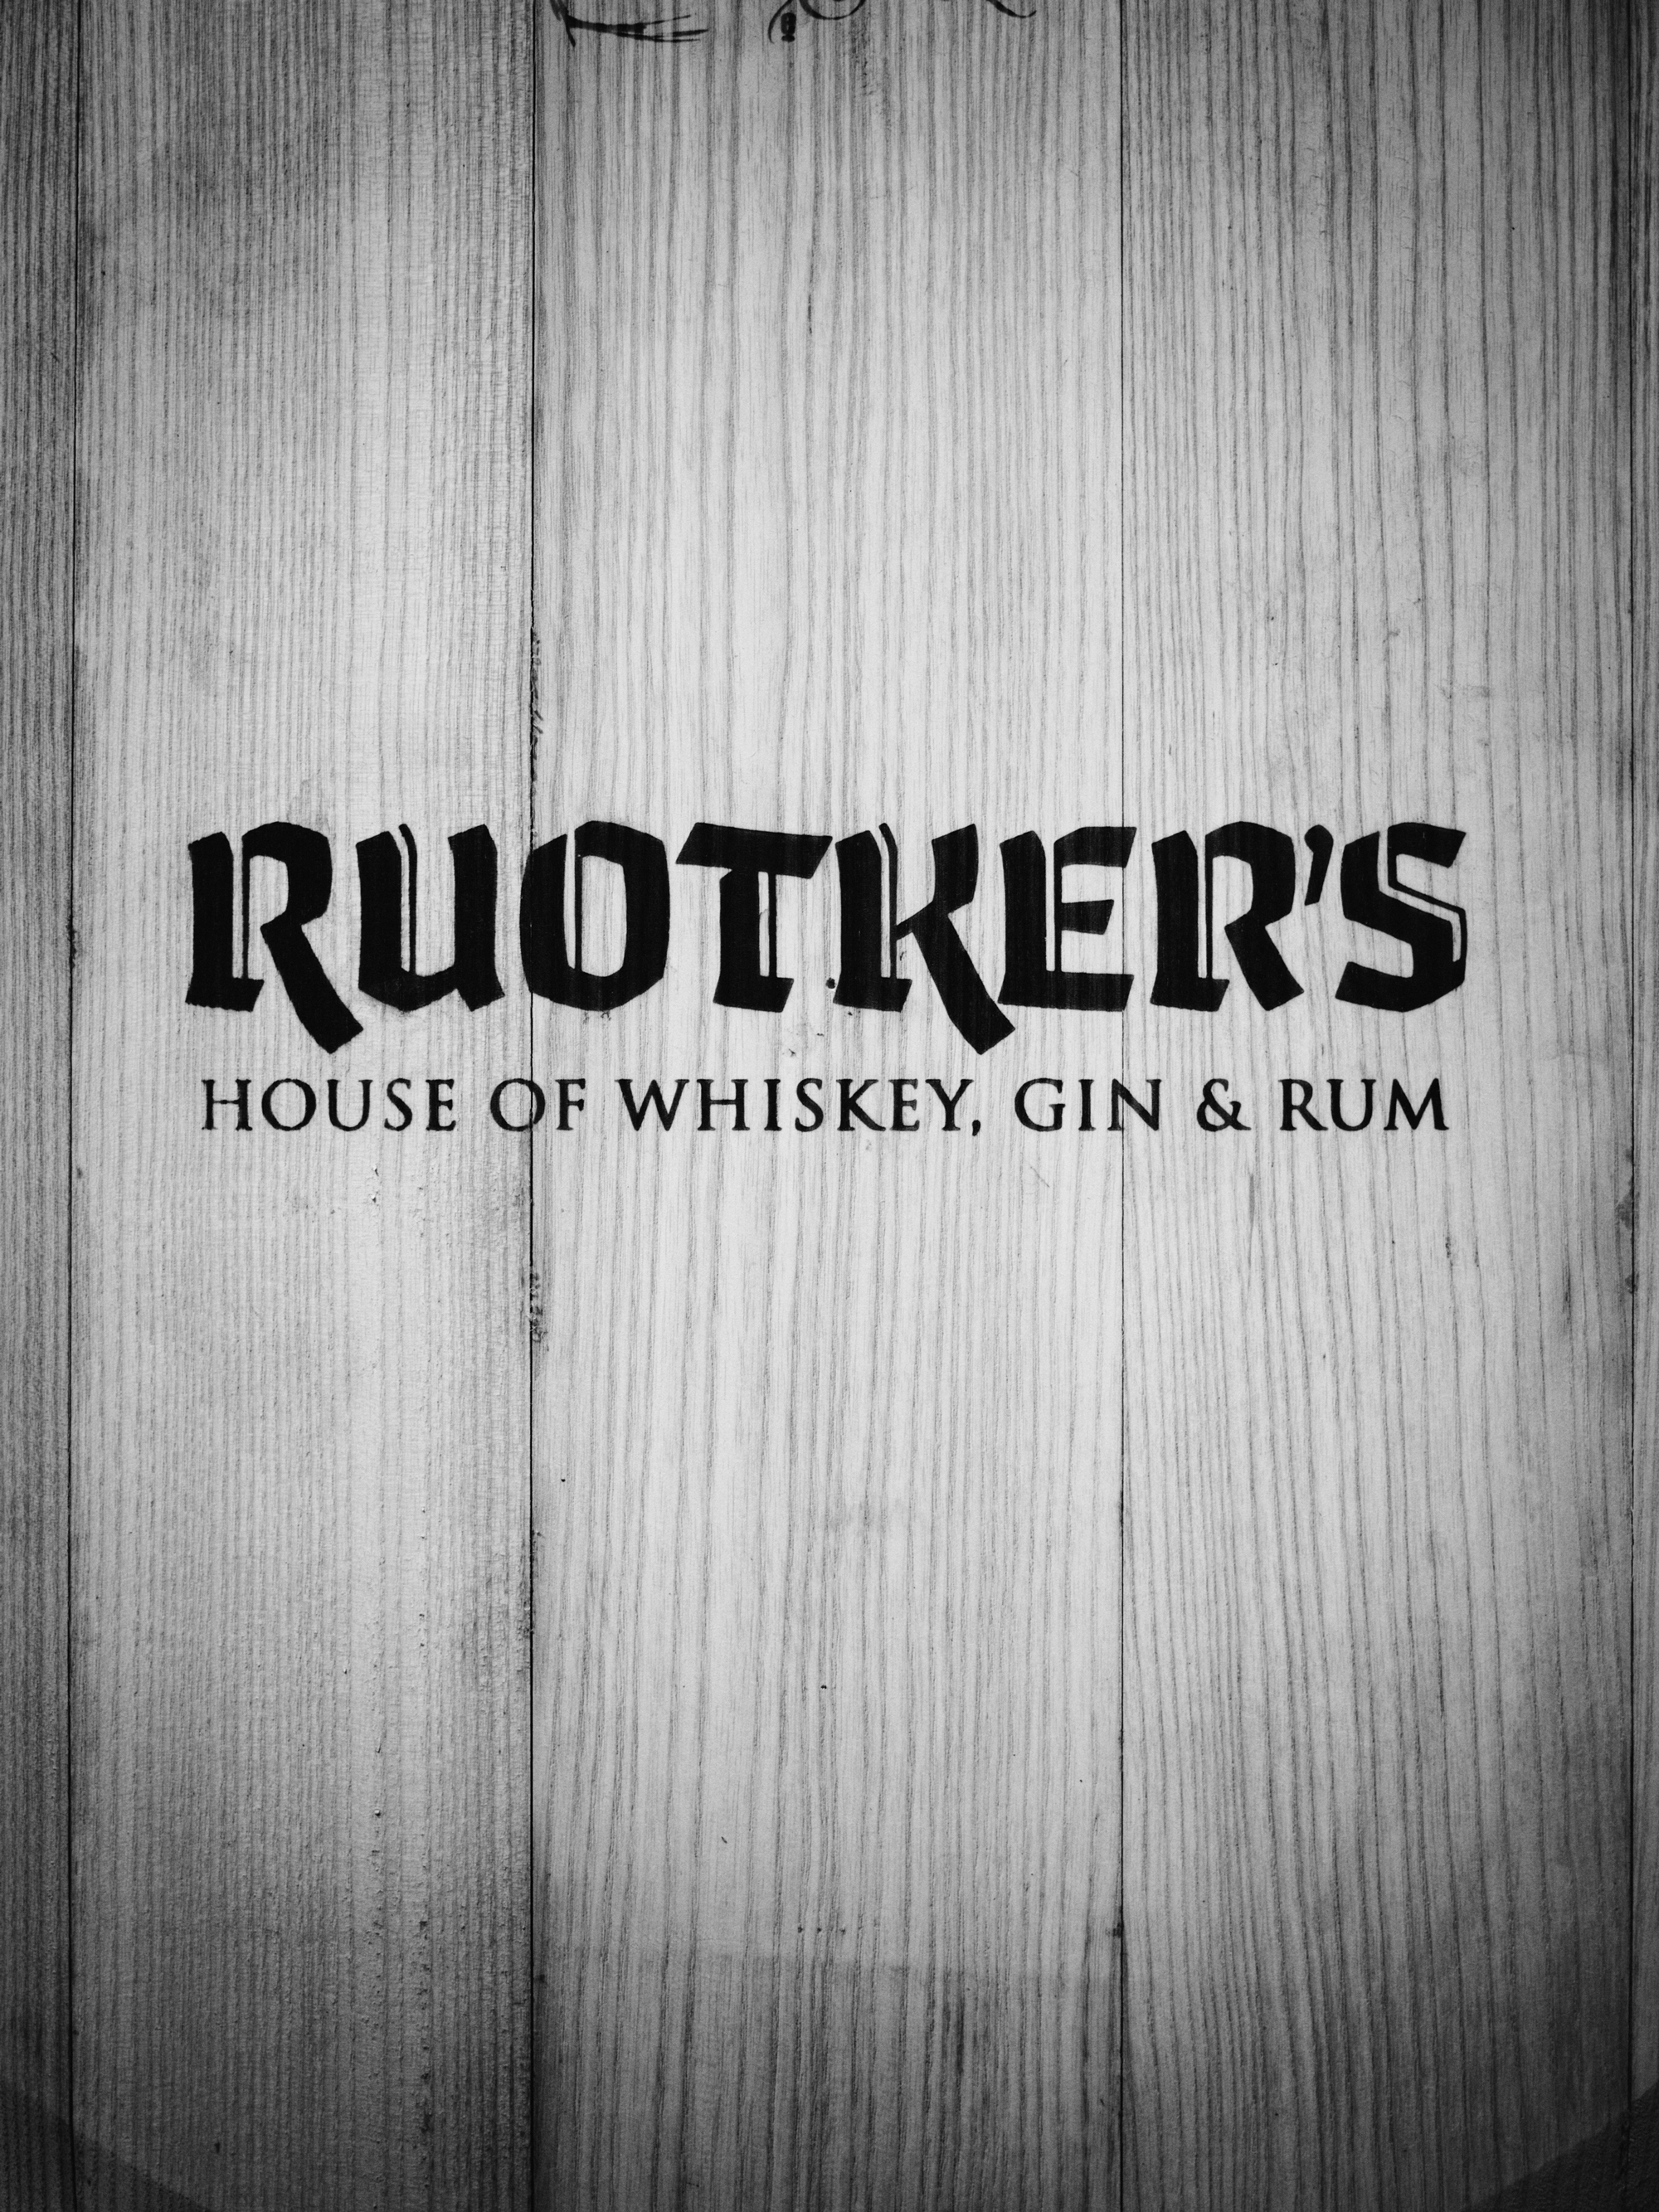 Ruotkers - house of whiskey gin and rum